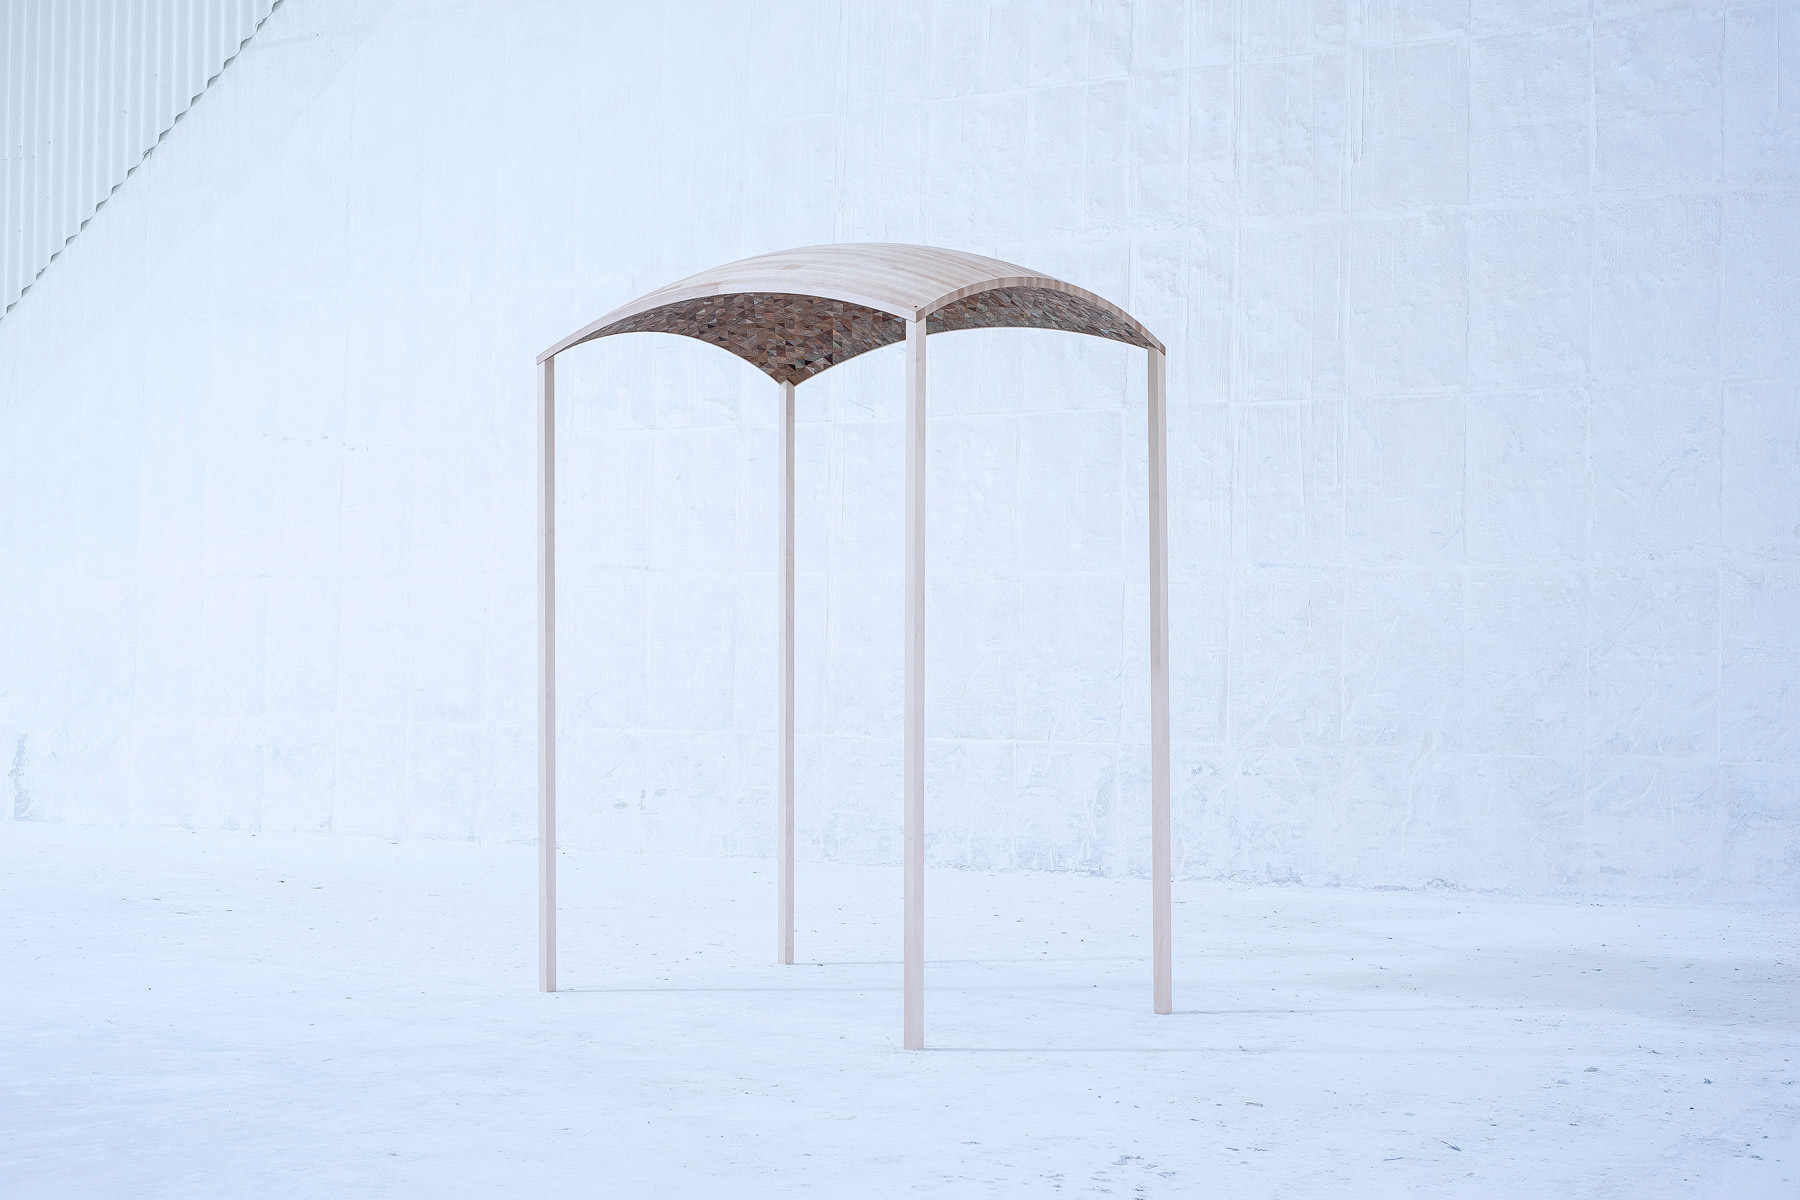 Alastair Mackie | Canopy | 2014 | leaf | sculpture | Home | Crisis Commission